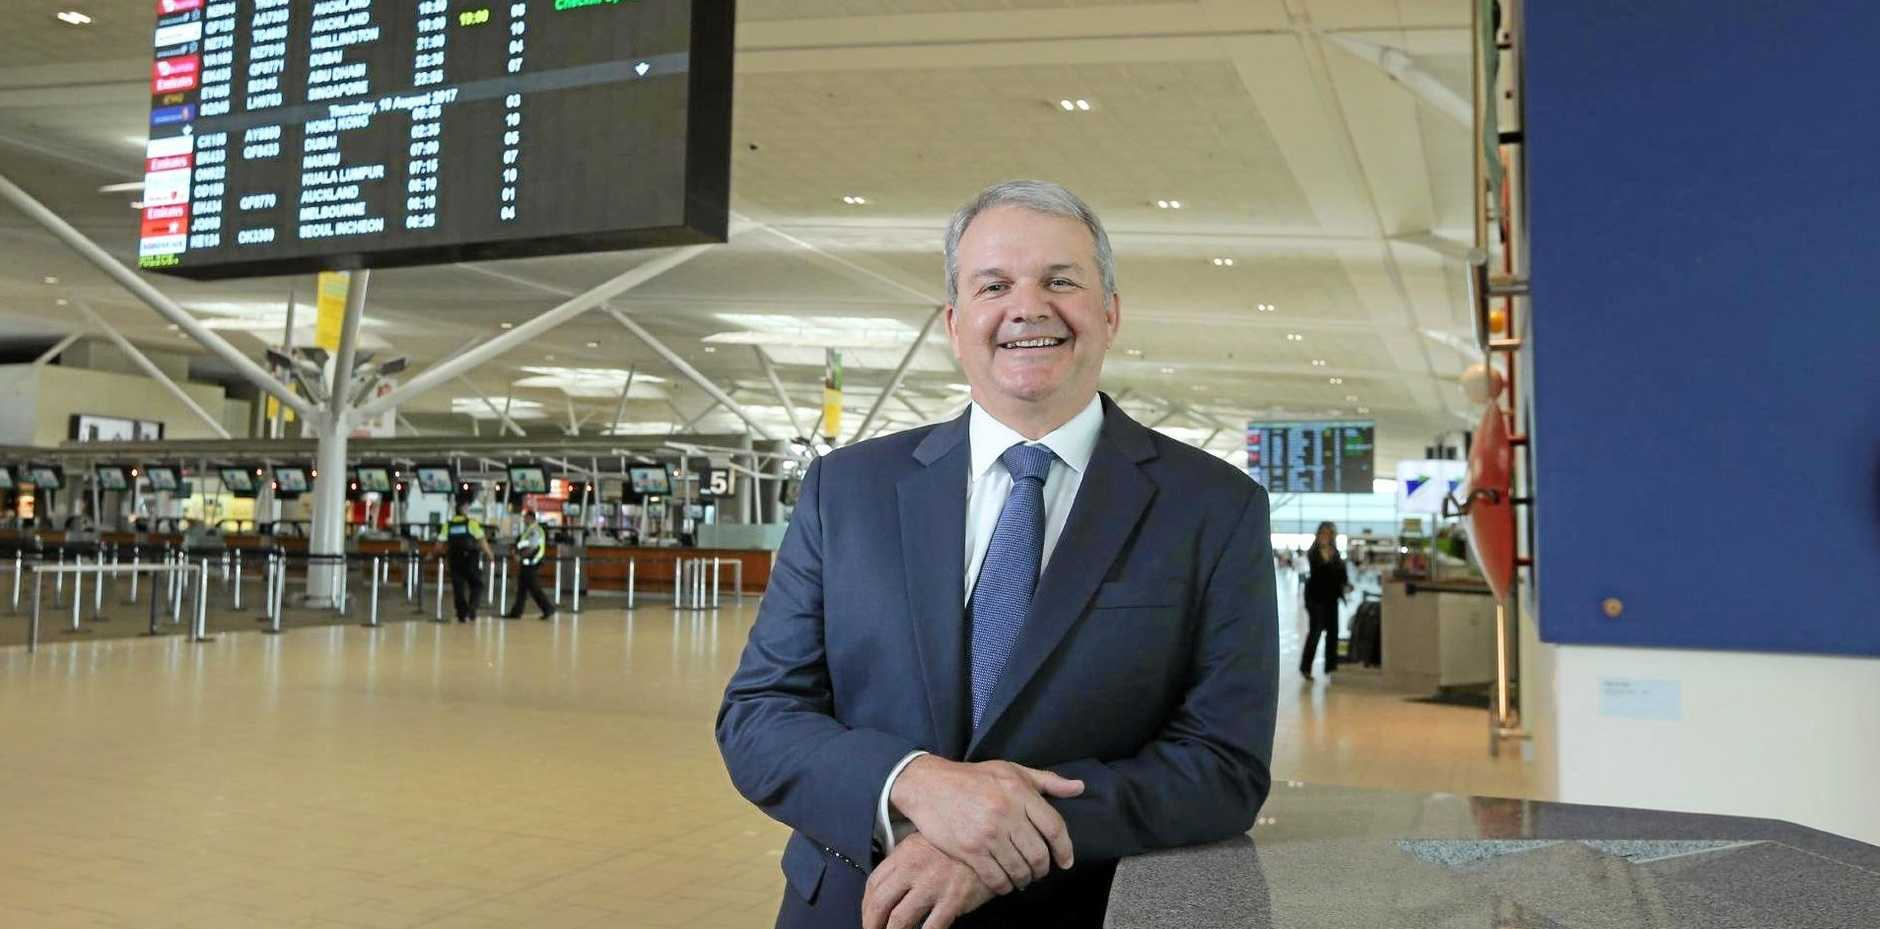 Andrew Brodie has been appointed the new CEO at the Sunshine Coast Airport.